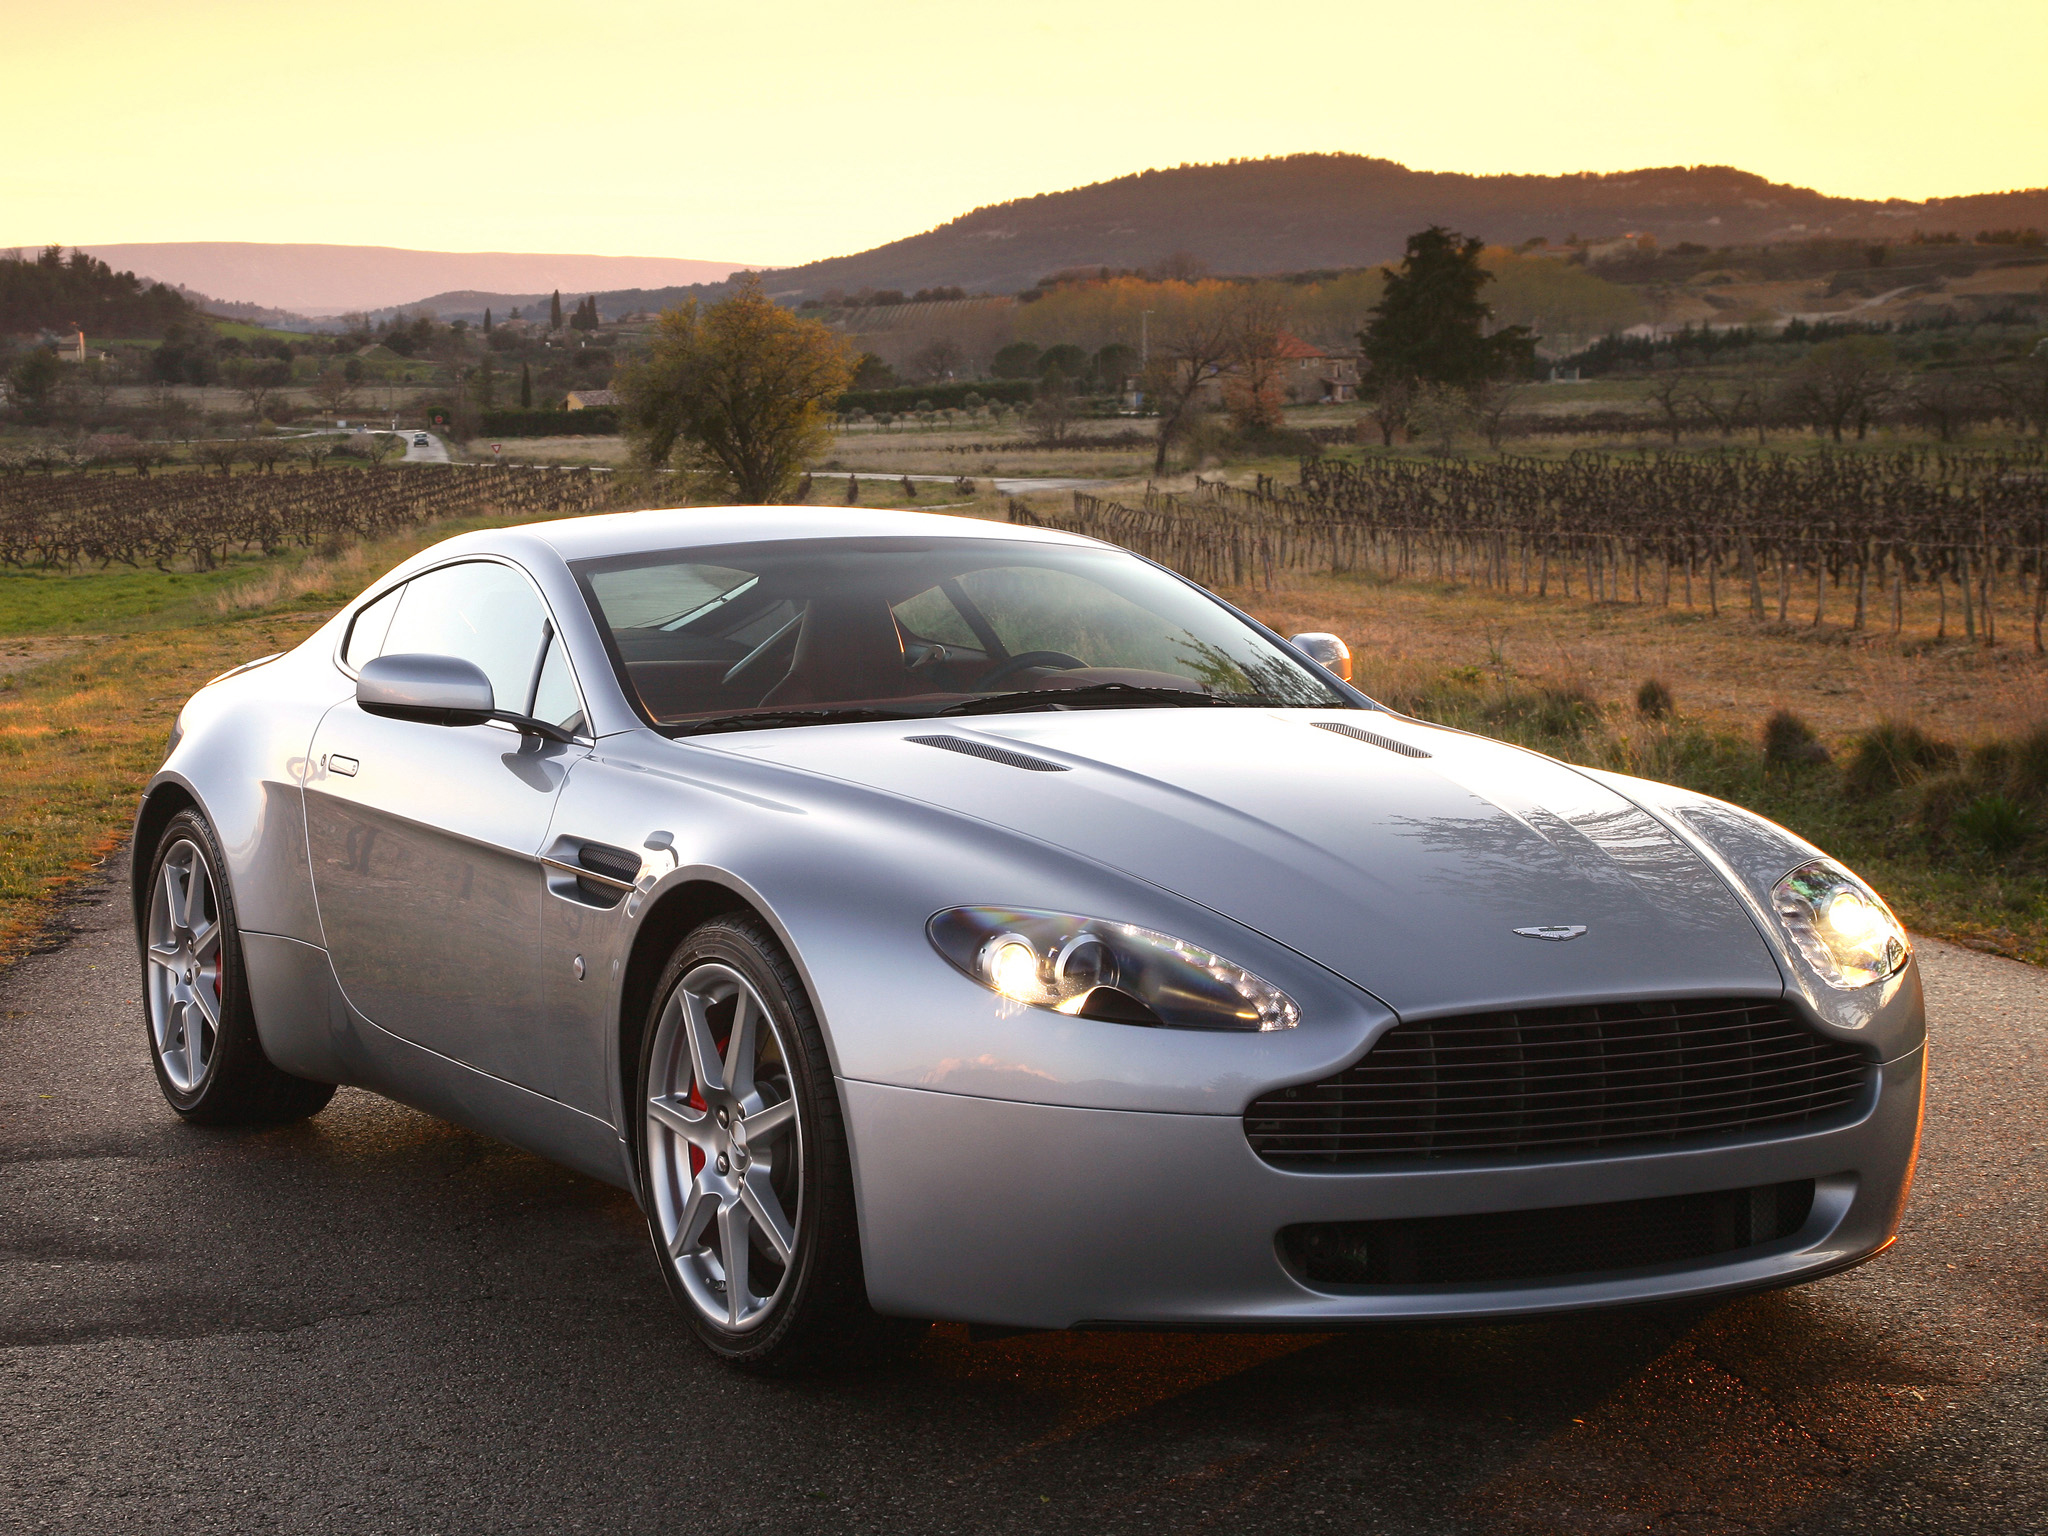 2008 aston martin v8 vantage 2005 pictures information and specs auto. Black Bedroom Furniture Sets. Home Design Ideas